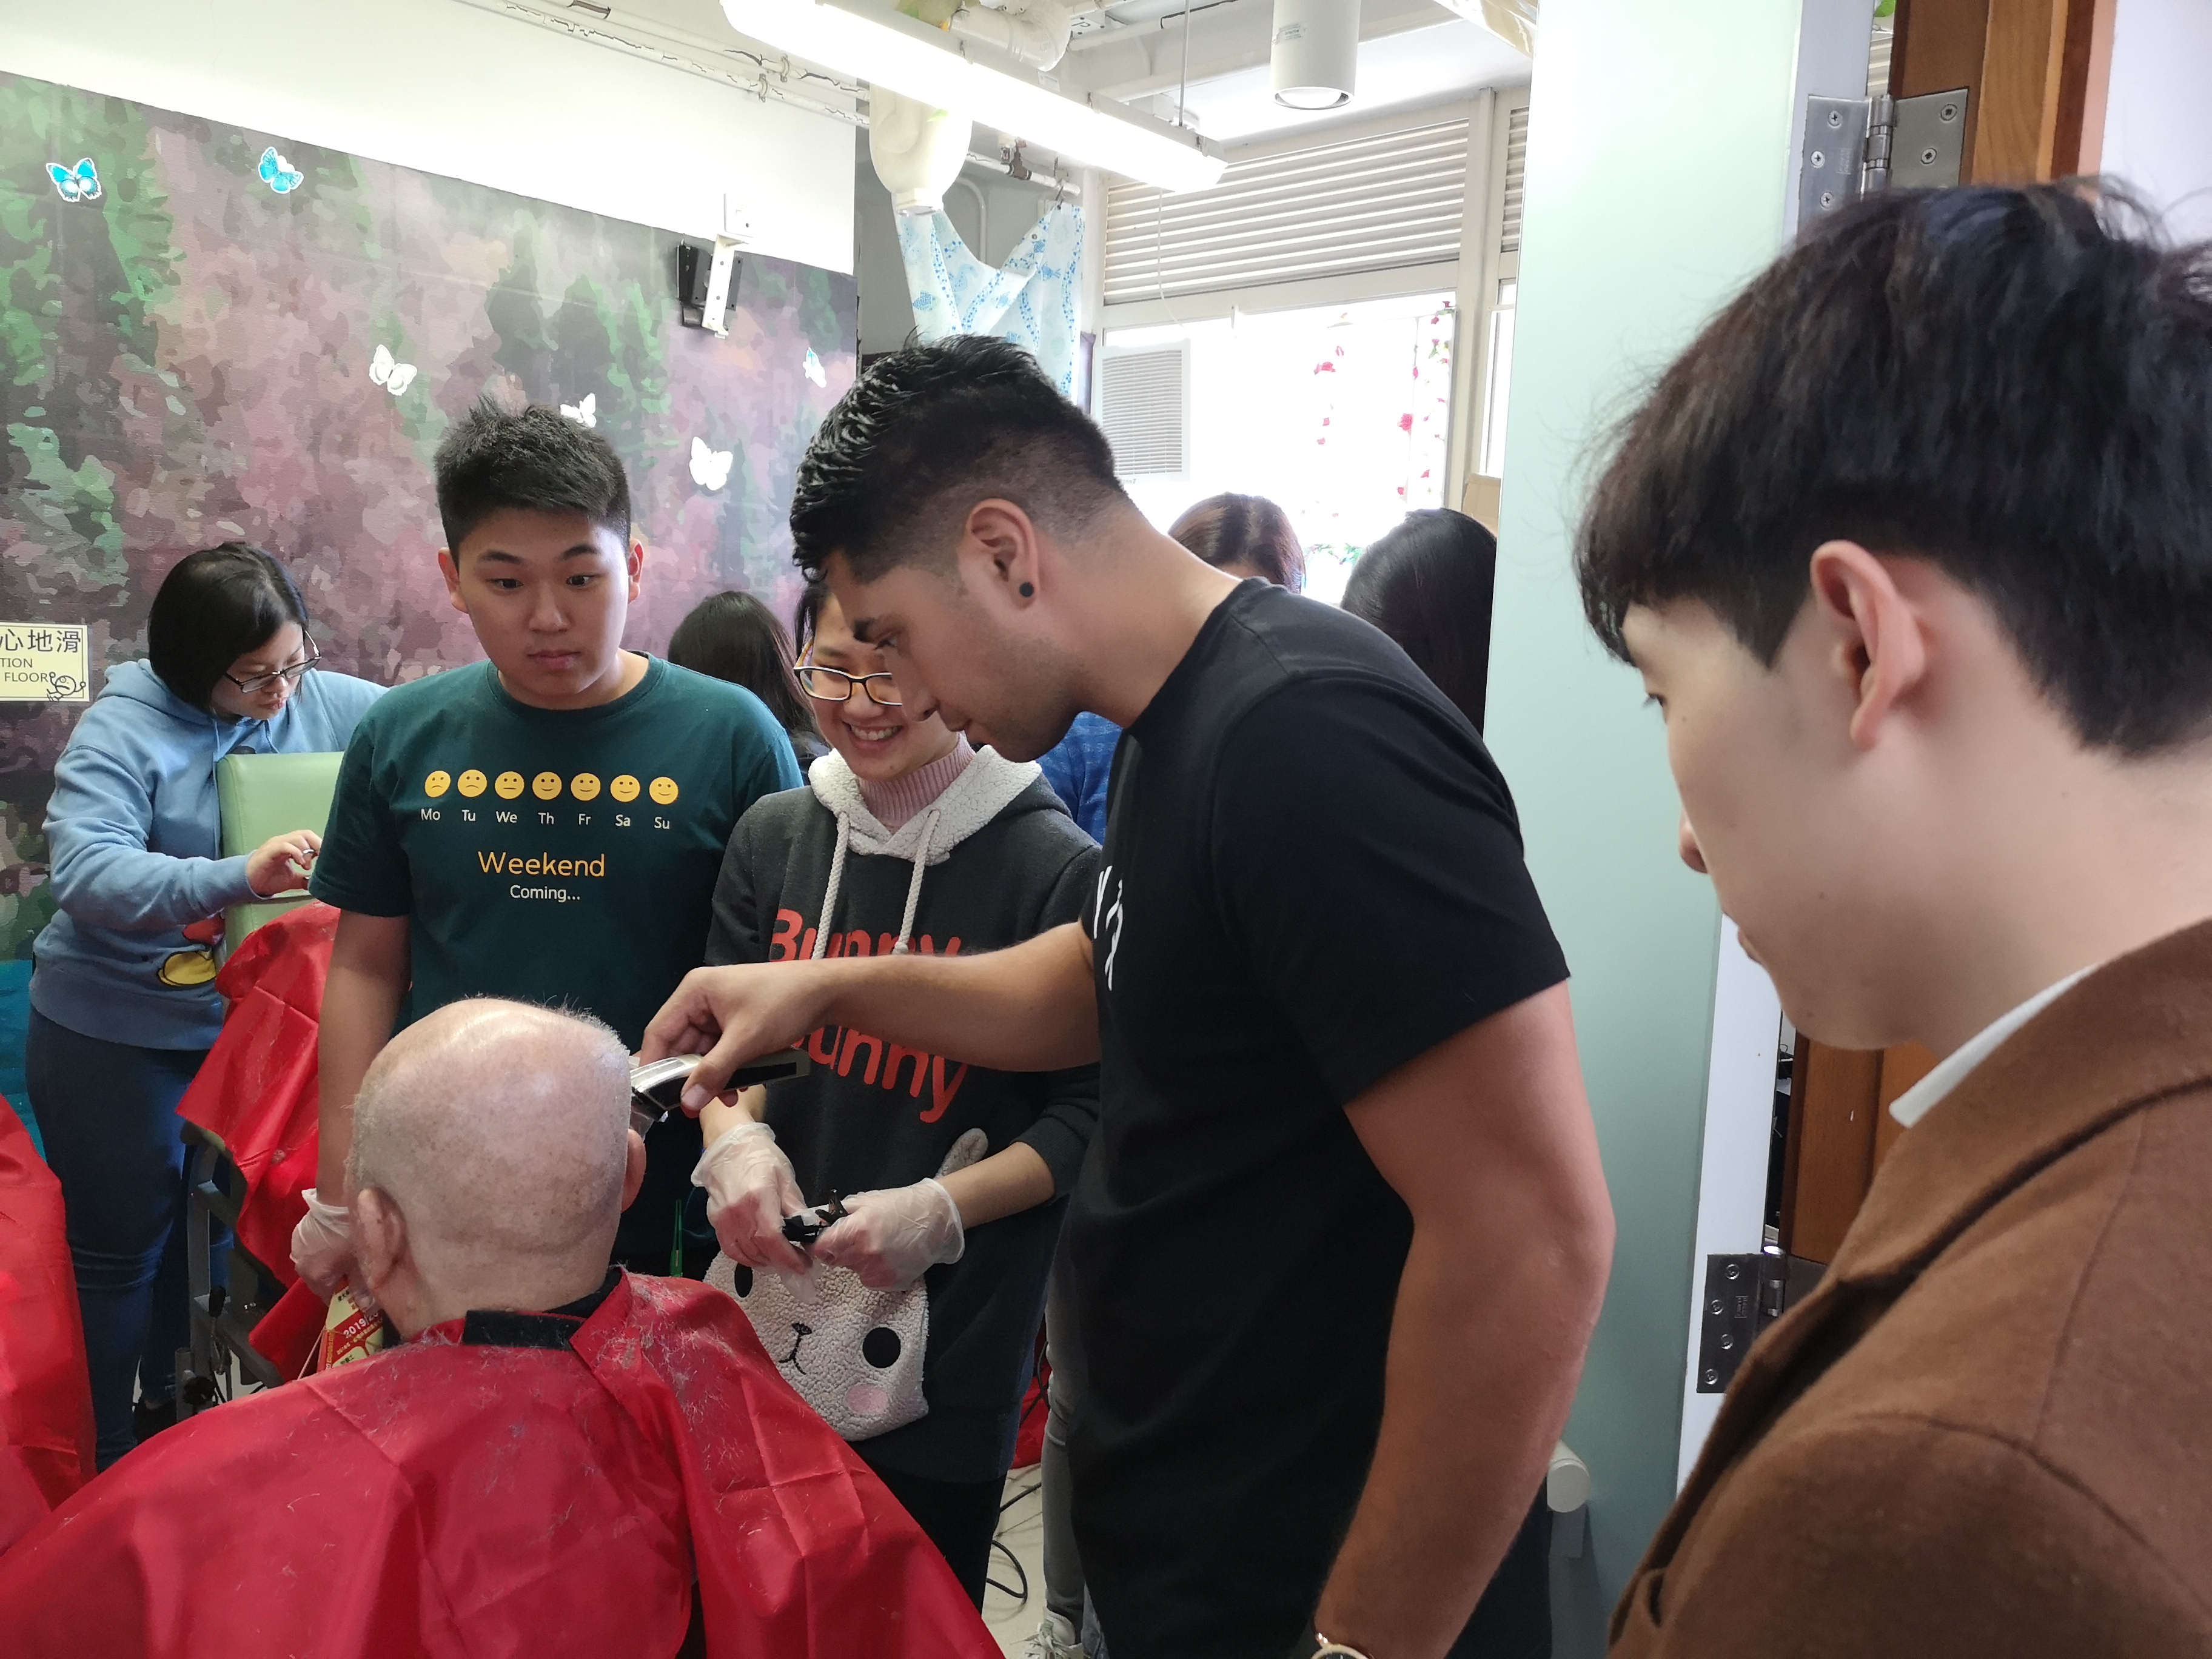 HPSHCC Community Barber Service Team's First Service - Photo - 5